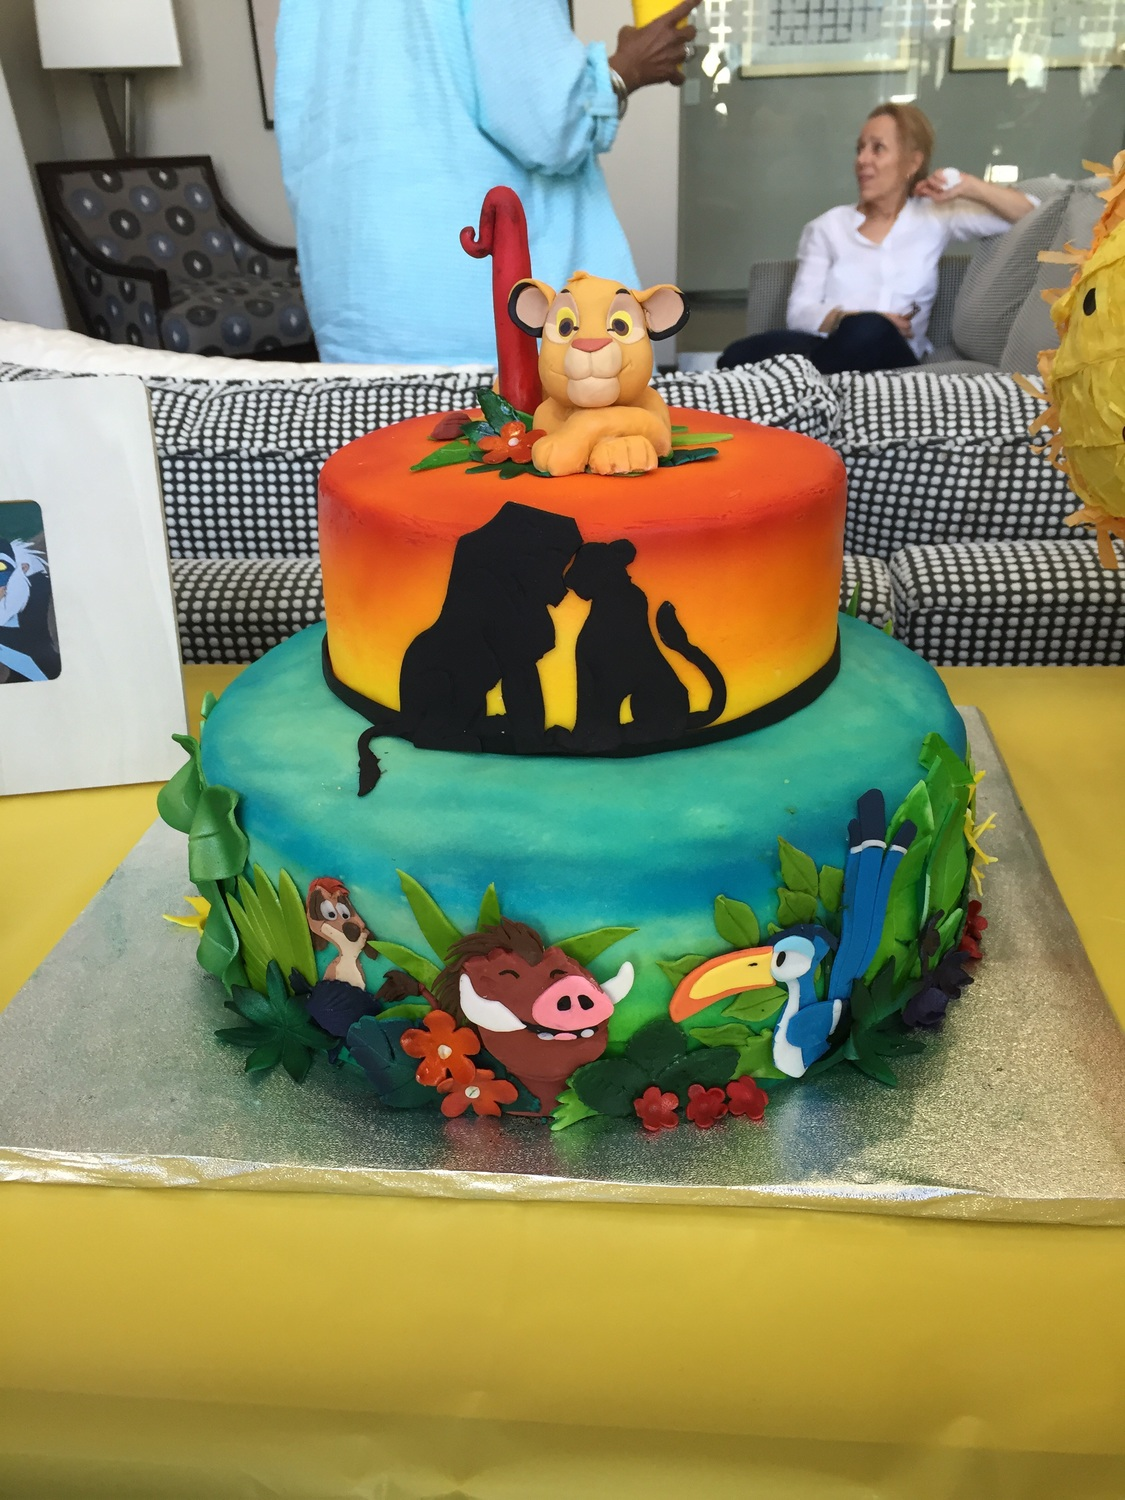 Description Lion King Themed Cake Perfect For Babies First Birthday Fondant Covered With Rice Crispie As The Topper All Pieces Are Hand Cut